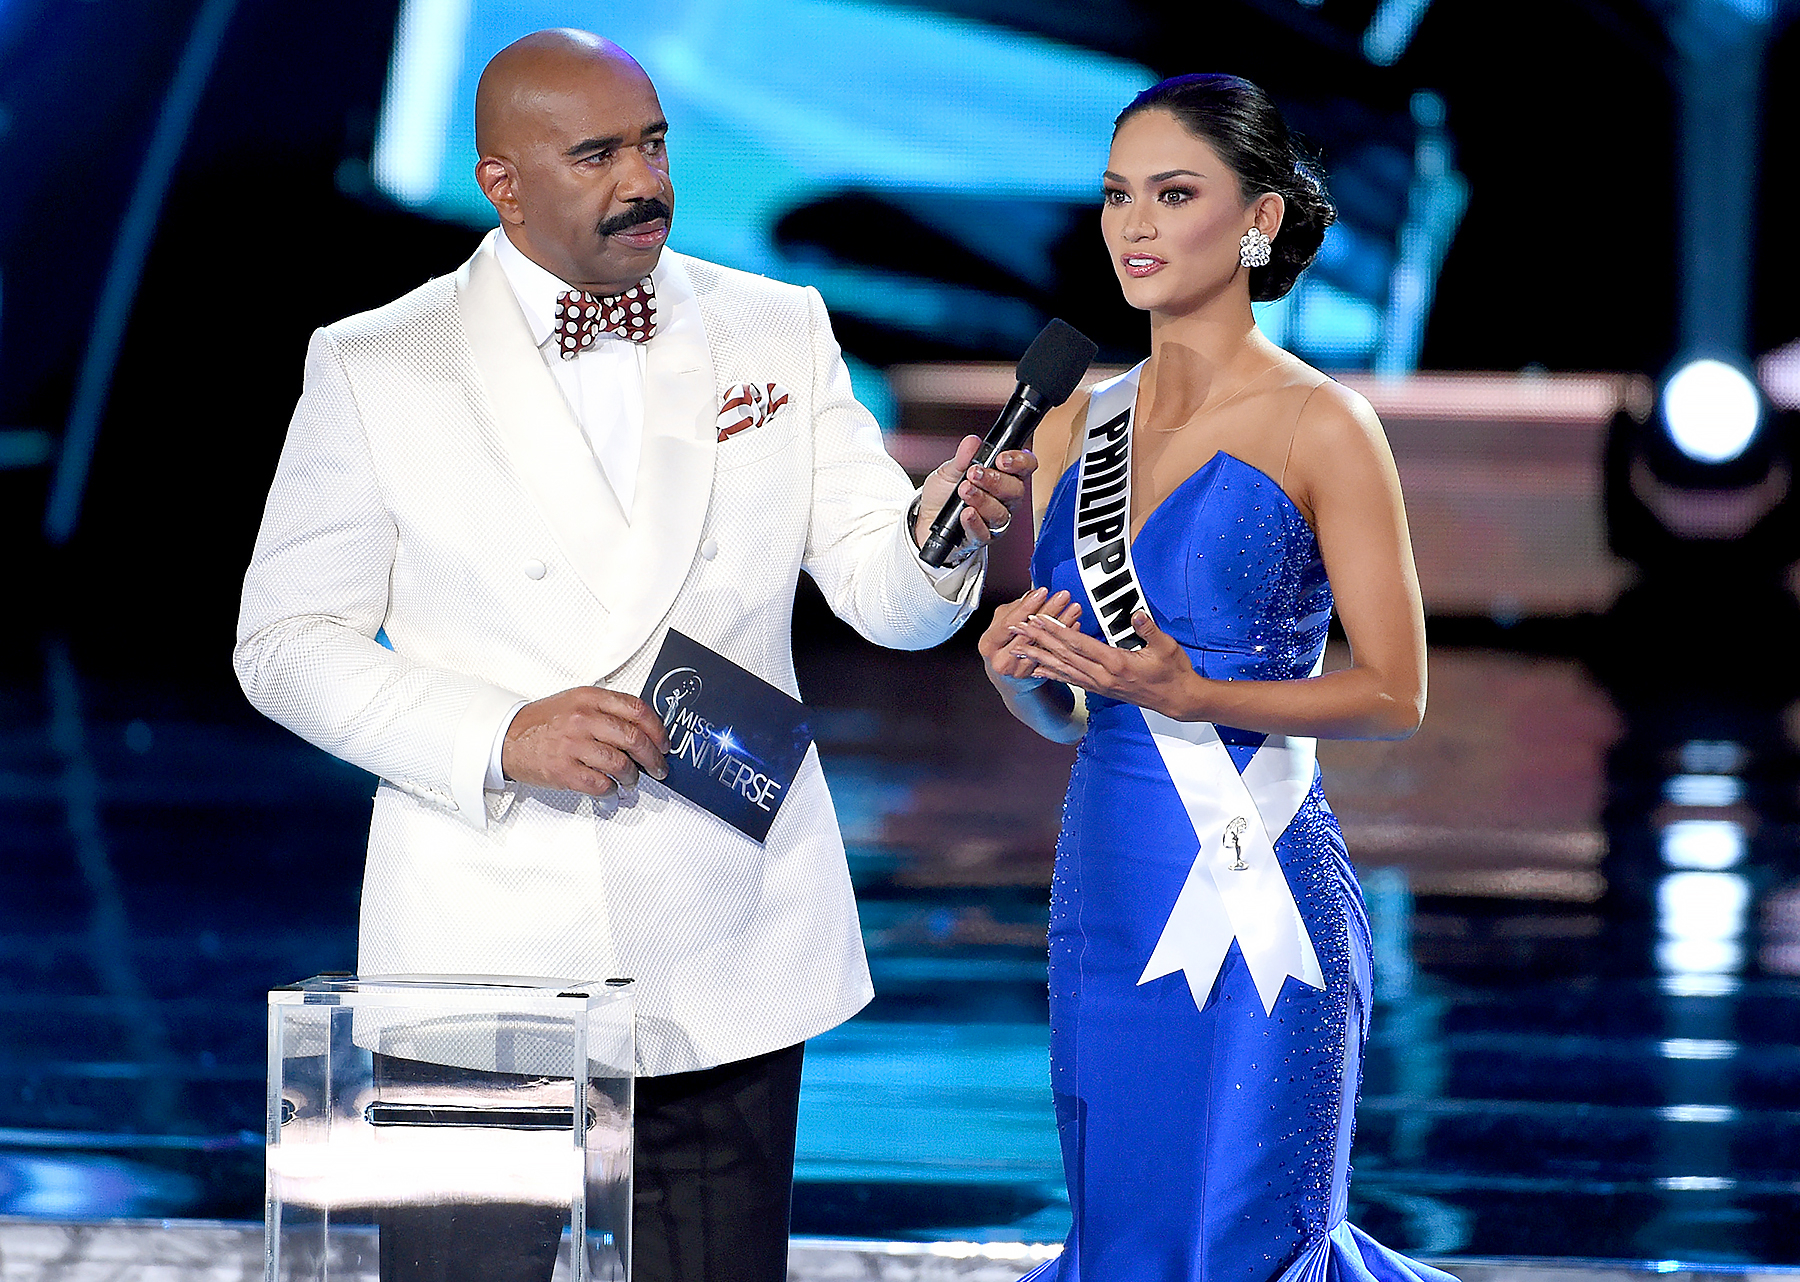 Host Steve Harvey listens as Miss Philippines 2015, Pia Alonzo Wurtzbach, answers a question during the interview portion of the 2015 Miss Universe Pageant at The Axis at Planet Hollywood Resort & Casino on December 20, 2015 in Las Vegas, Nevada.